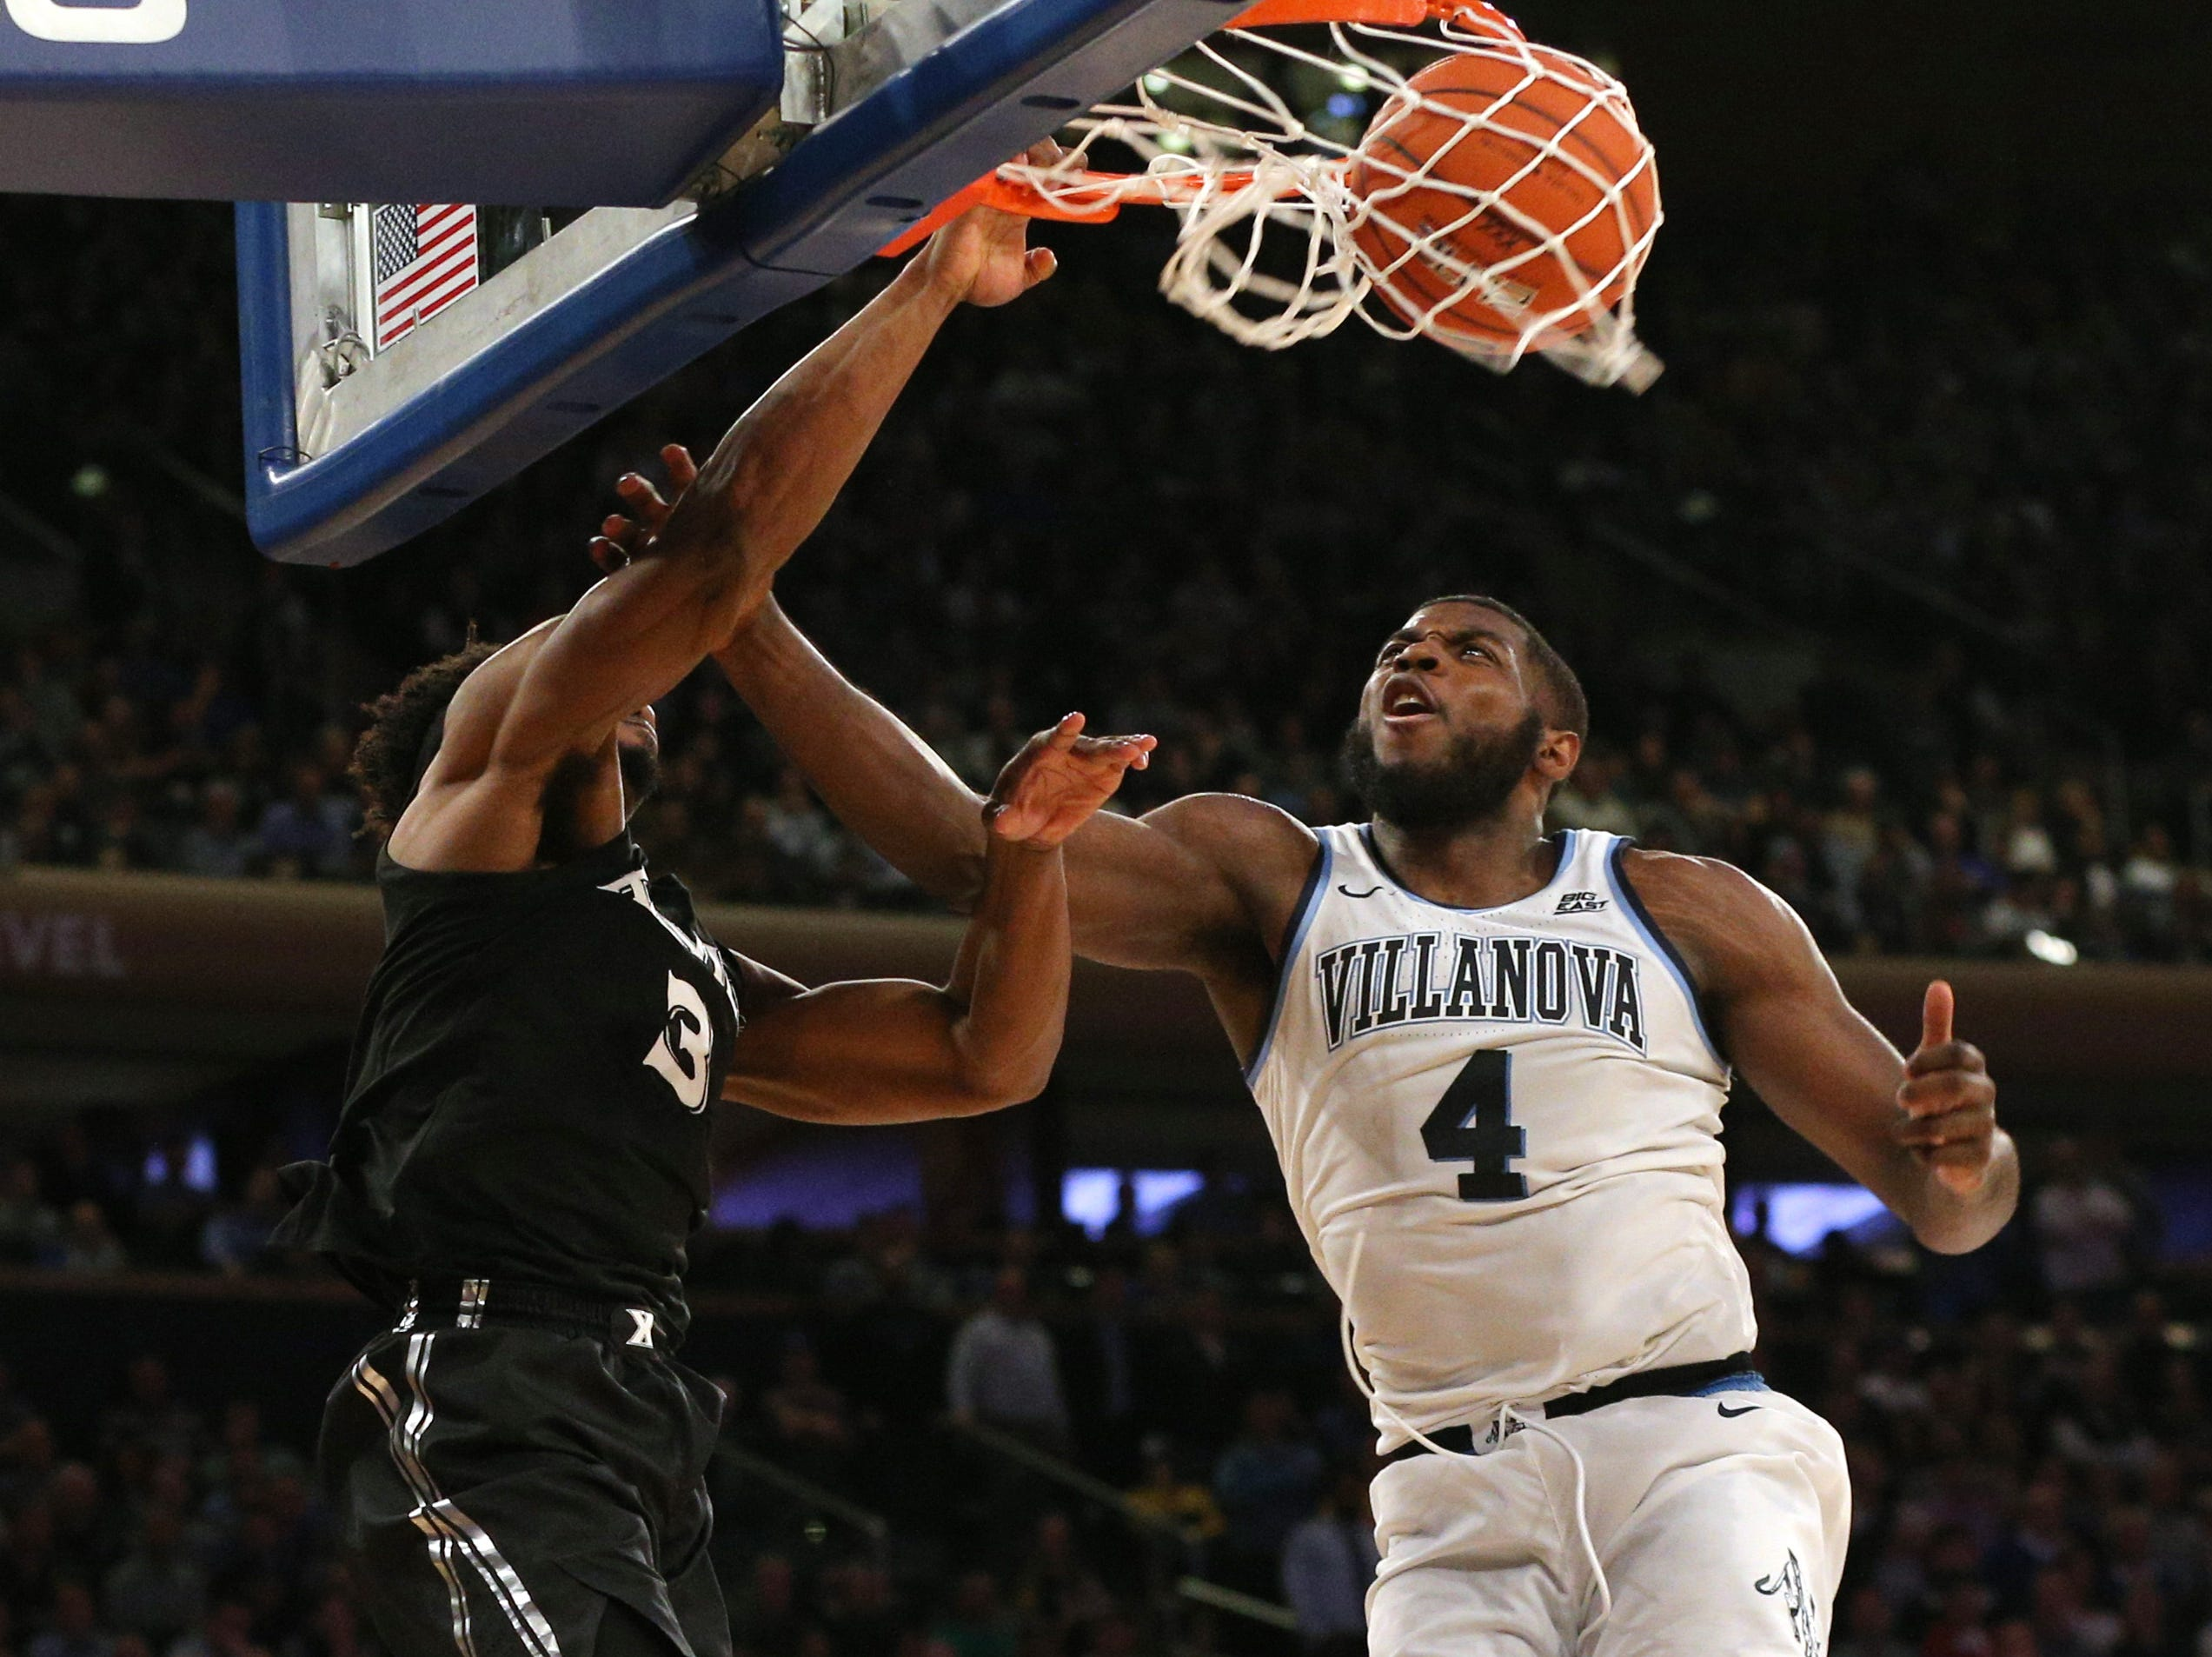 March 15: Xavier Musketeers guard Quentin Goodin (3) dunks against Villanova Wildcats forward Eric Paschall (4) during overtime of a Big East tournament game.